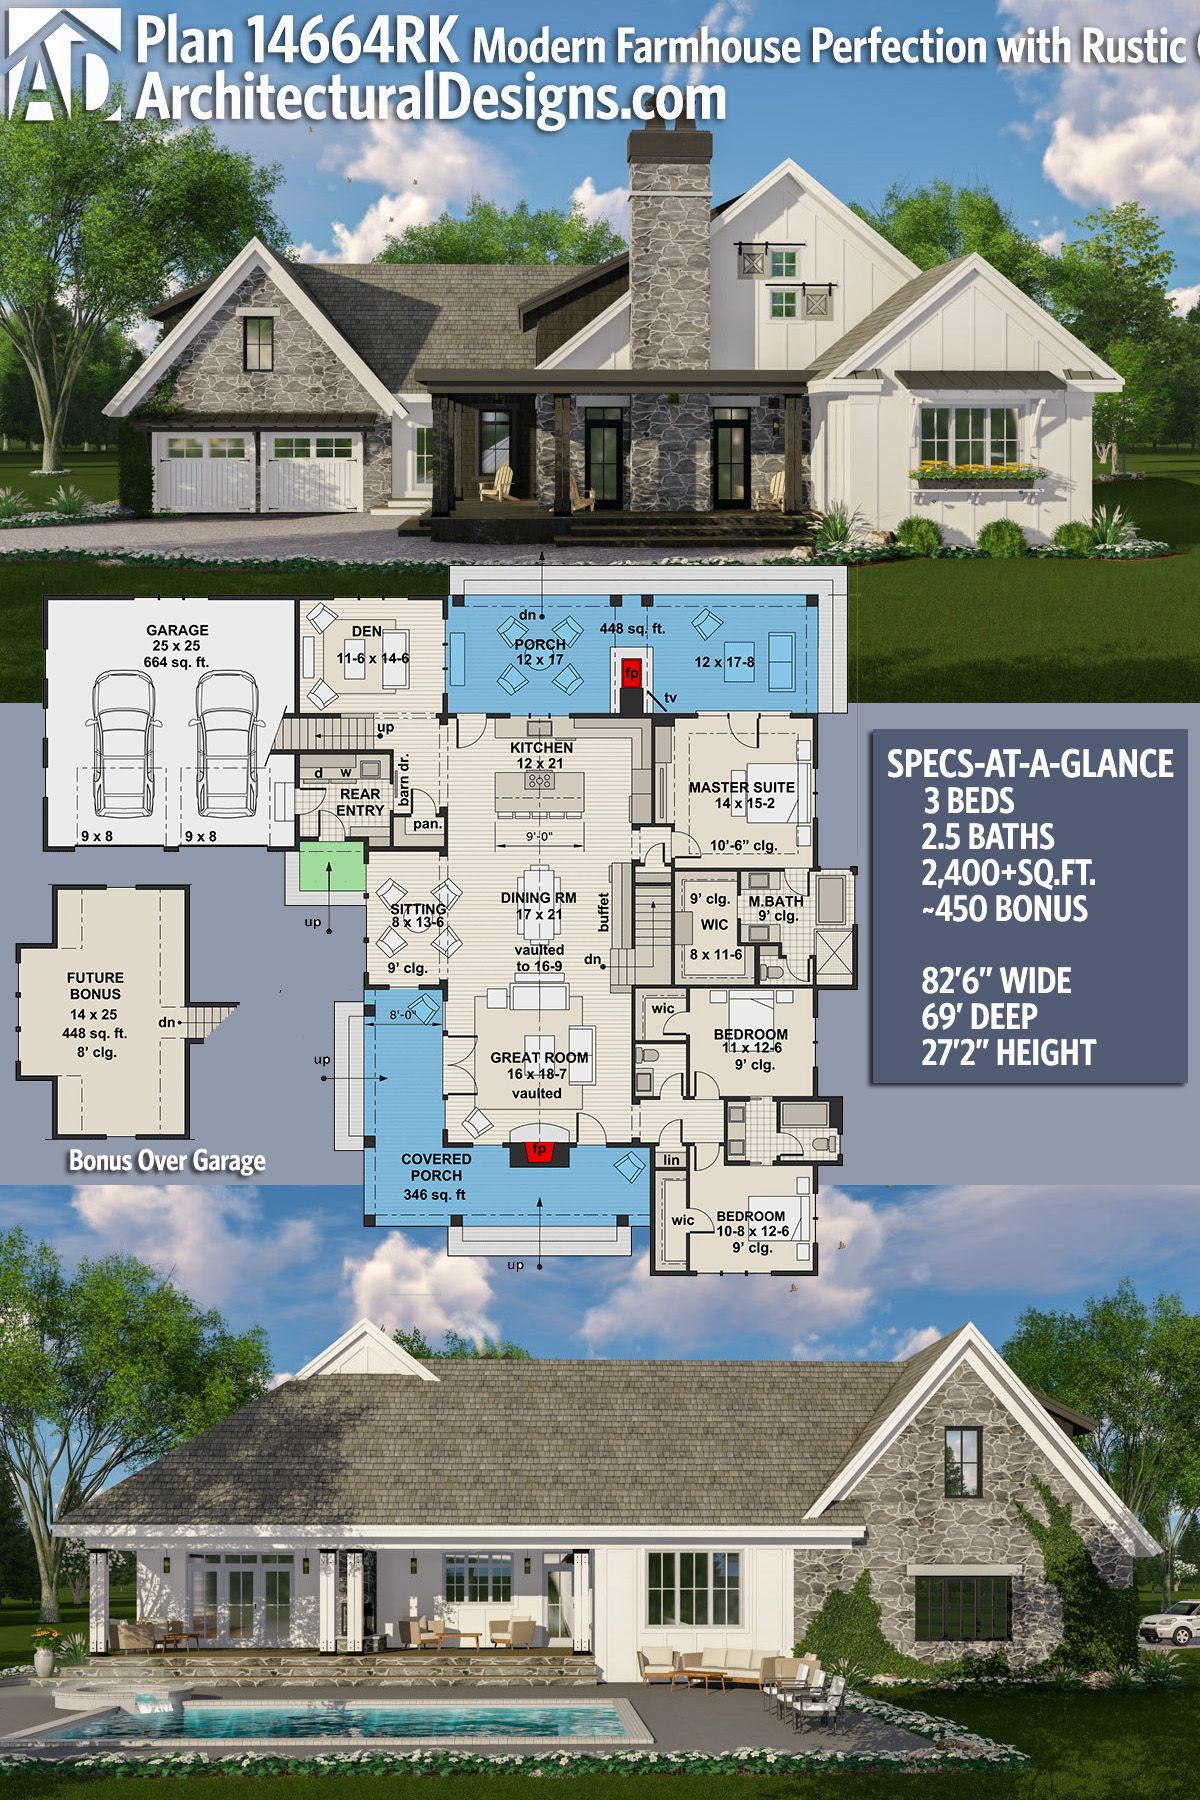 Architectural designs house plan rk gives you br ba and over sq ft of heated living space plus  bonus the garage also rh pinterest